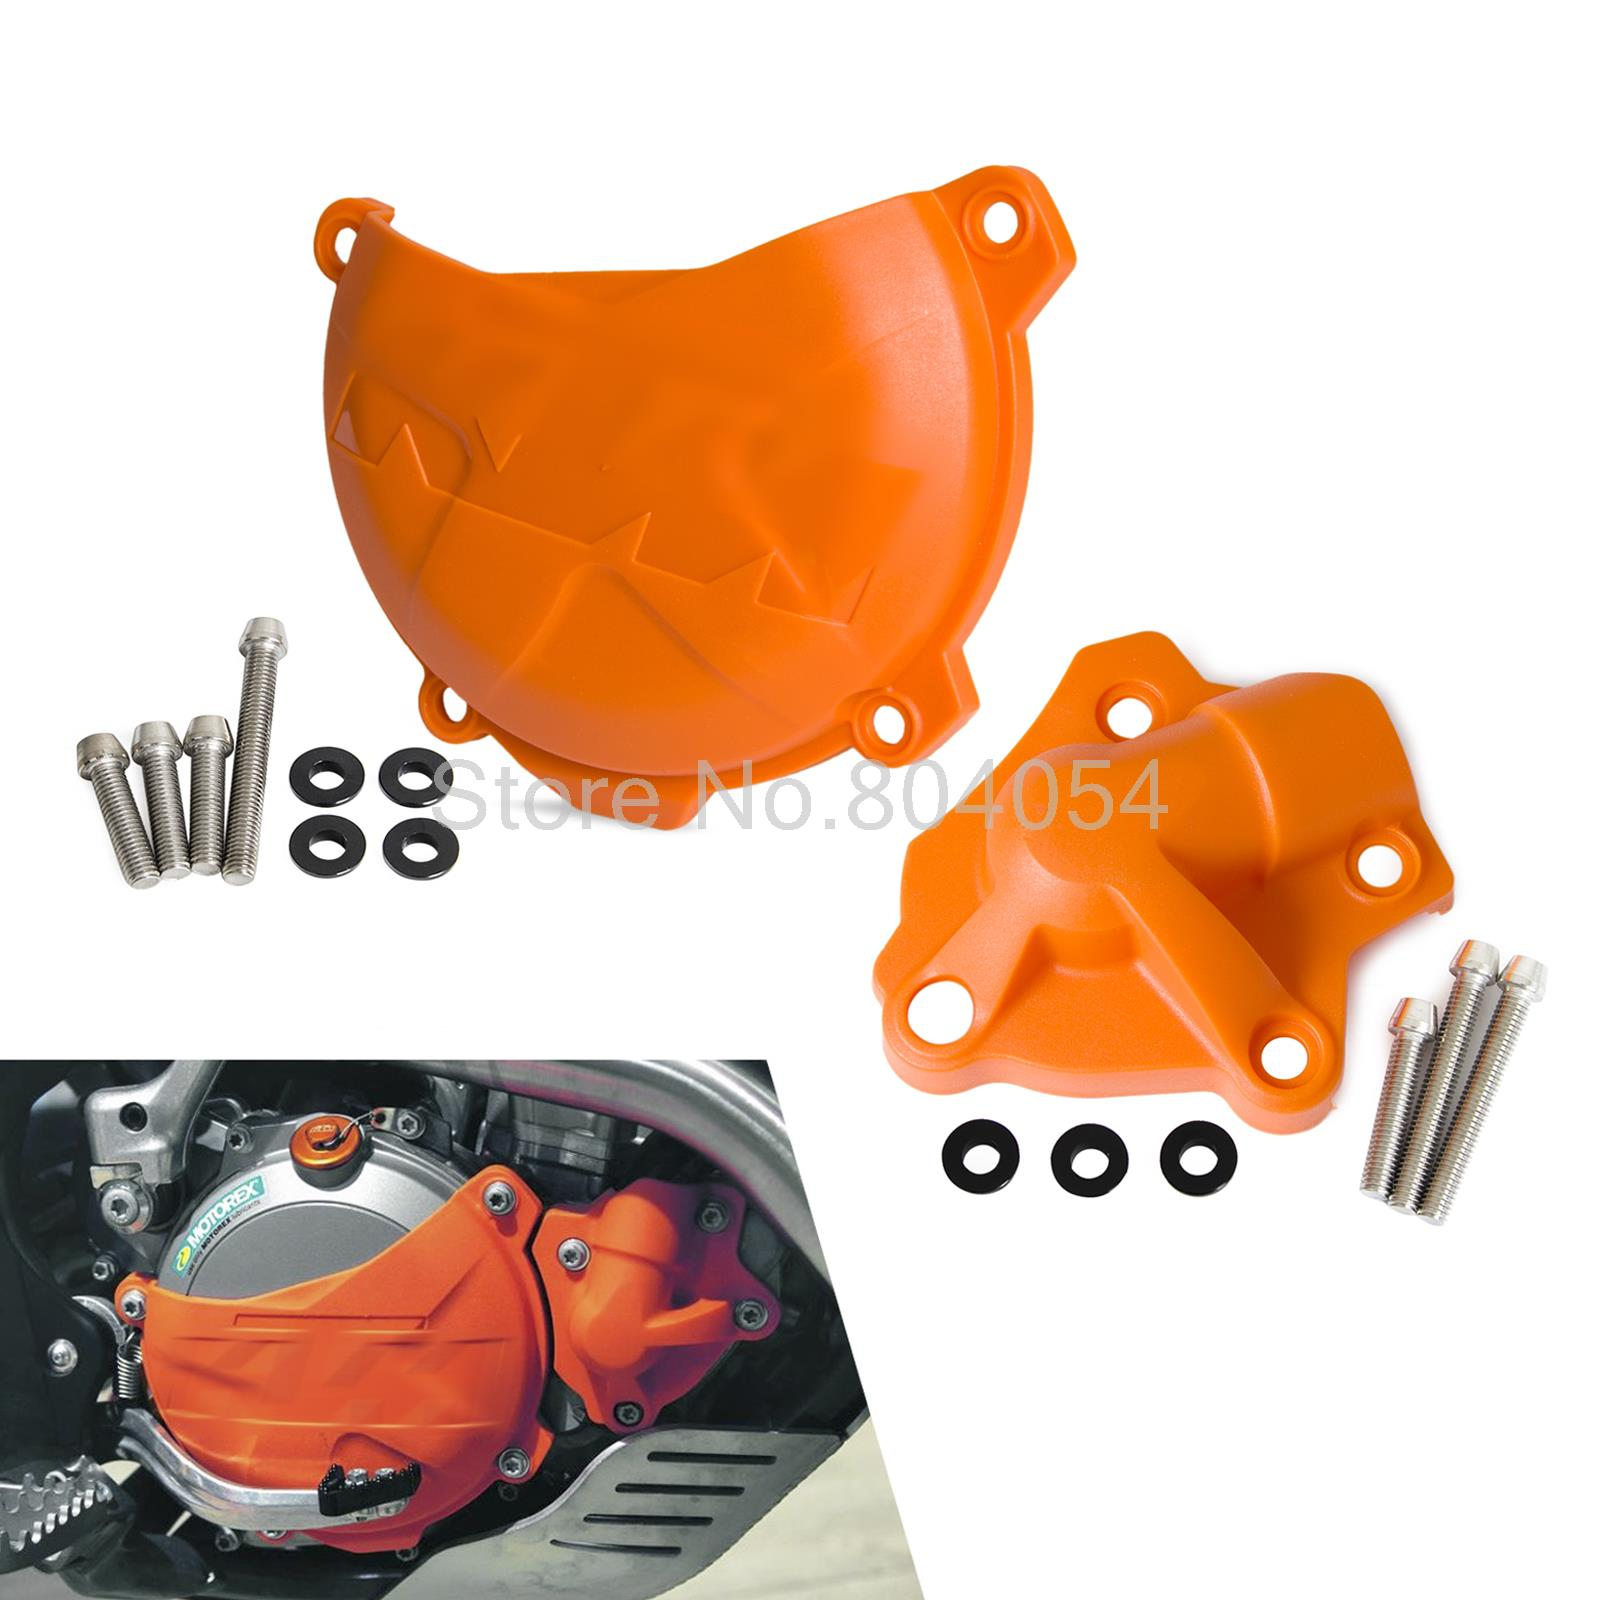 ФОТО Clutch Cover Protection Cover Water Pump Cover Protector for KTM 250 EXC-F 2014-2016